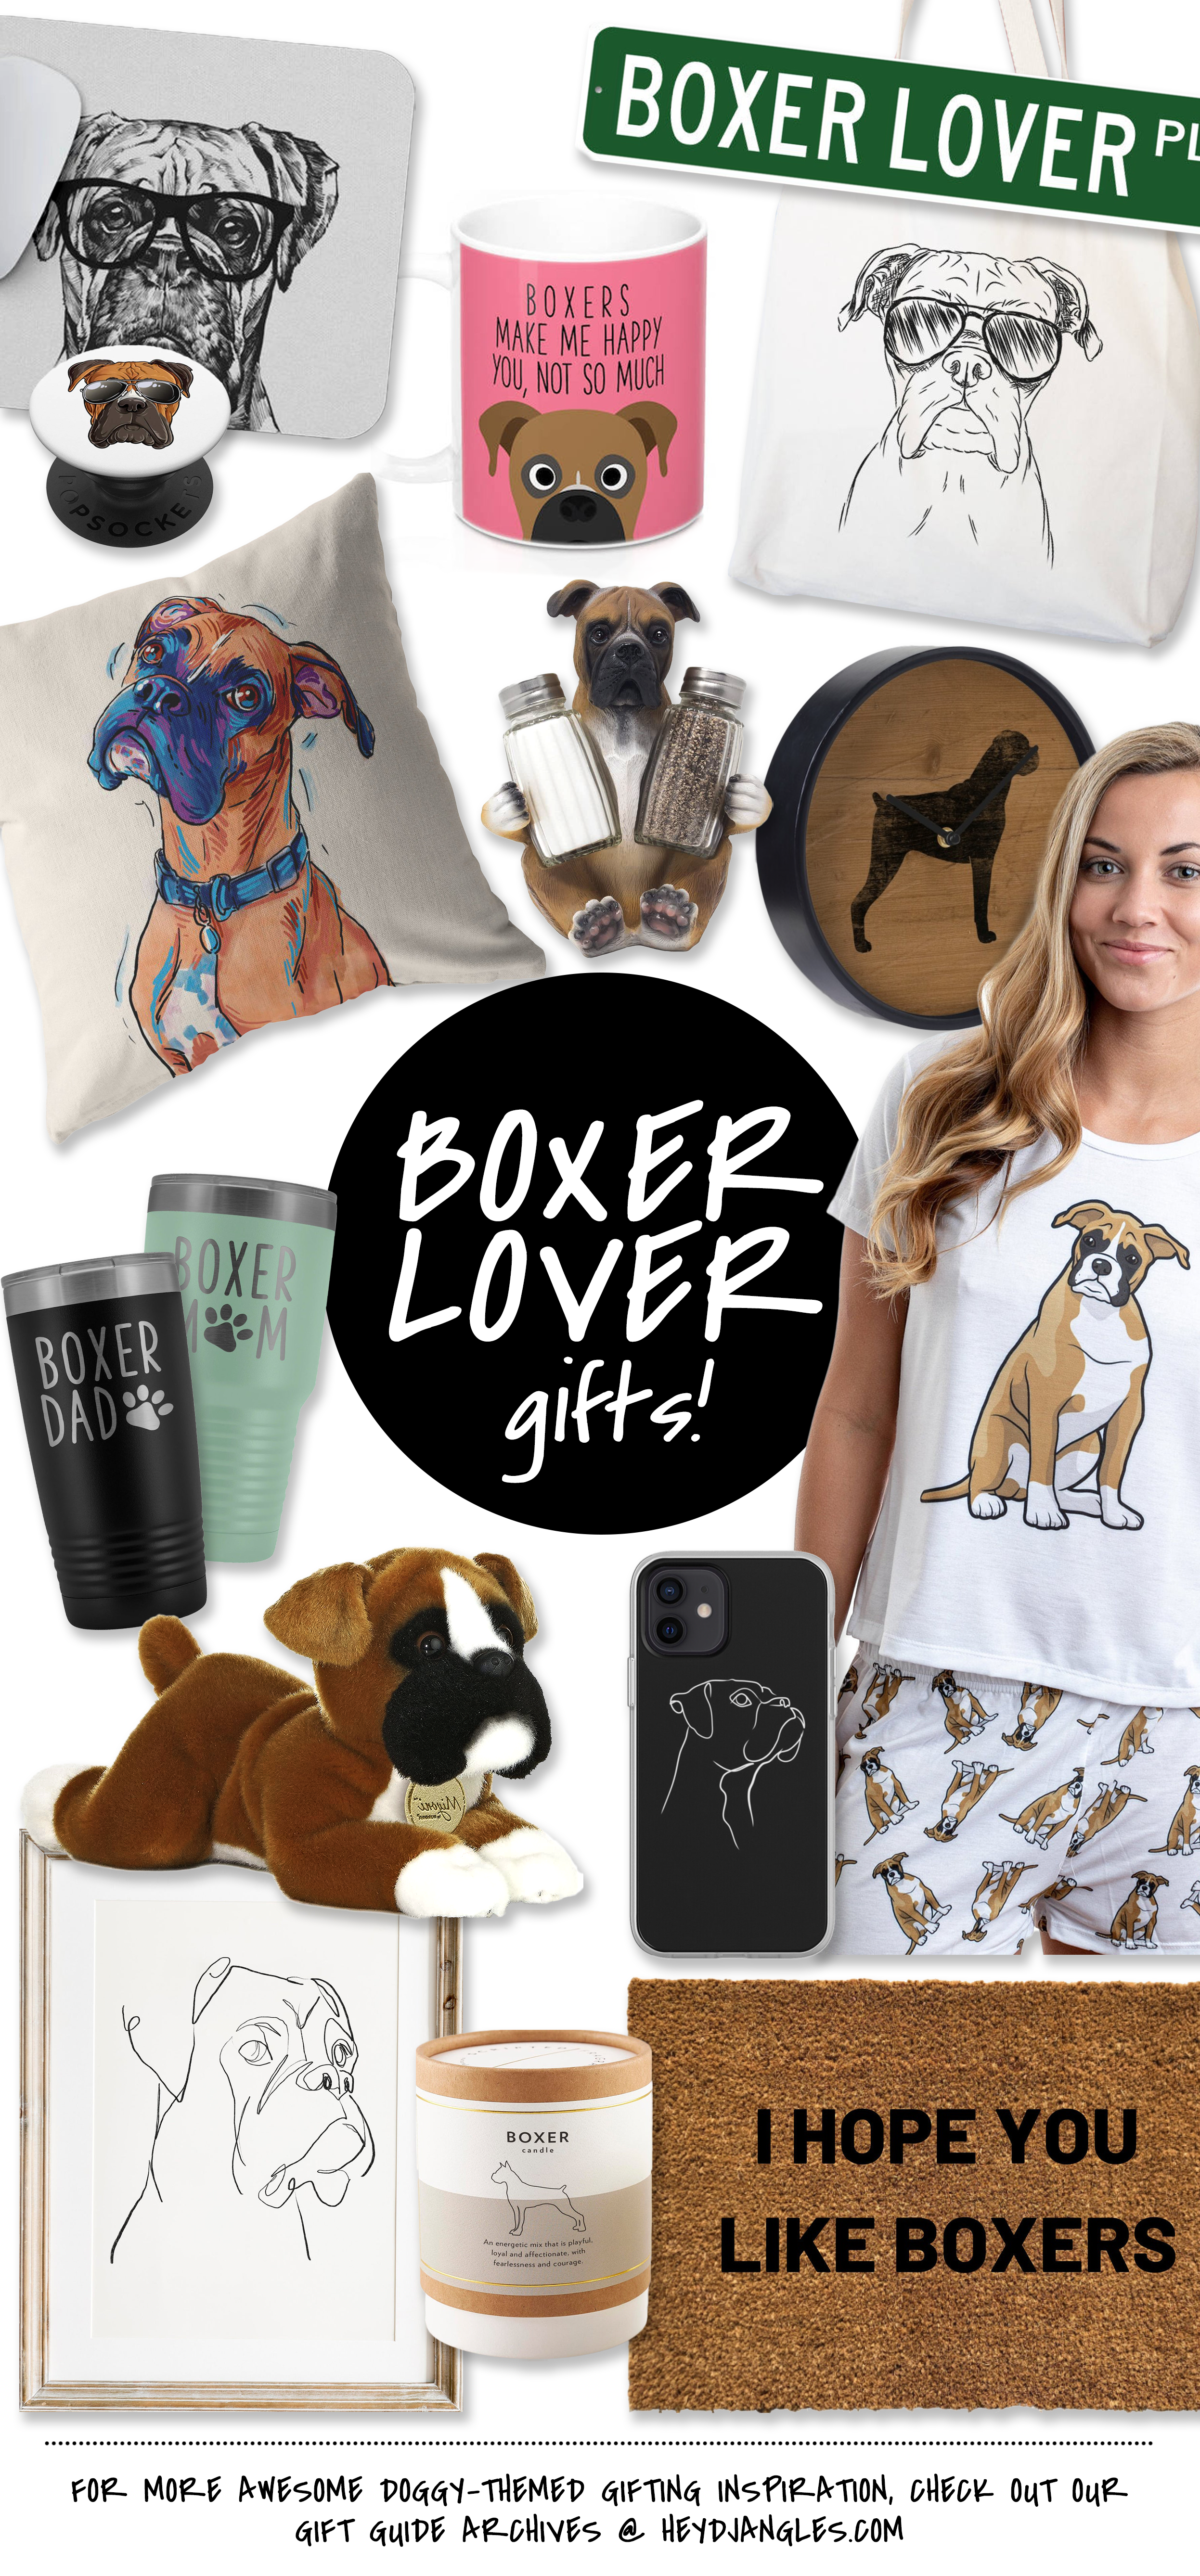 40+ Awesome Boxer Dog Gifts for Boxer Lovers - Hey, Djangles. Boxer dog breed, gift ideas, Boxer dog merchandise, Boxer dog-themed gifting inspiration #boxerdog #giftguide #boxerlover